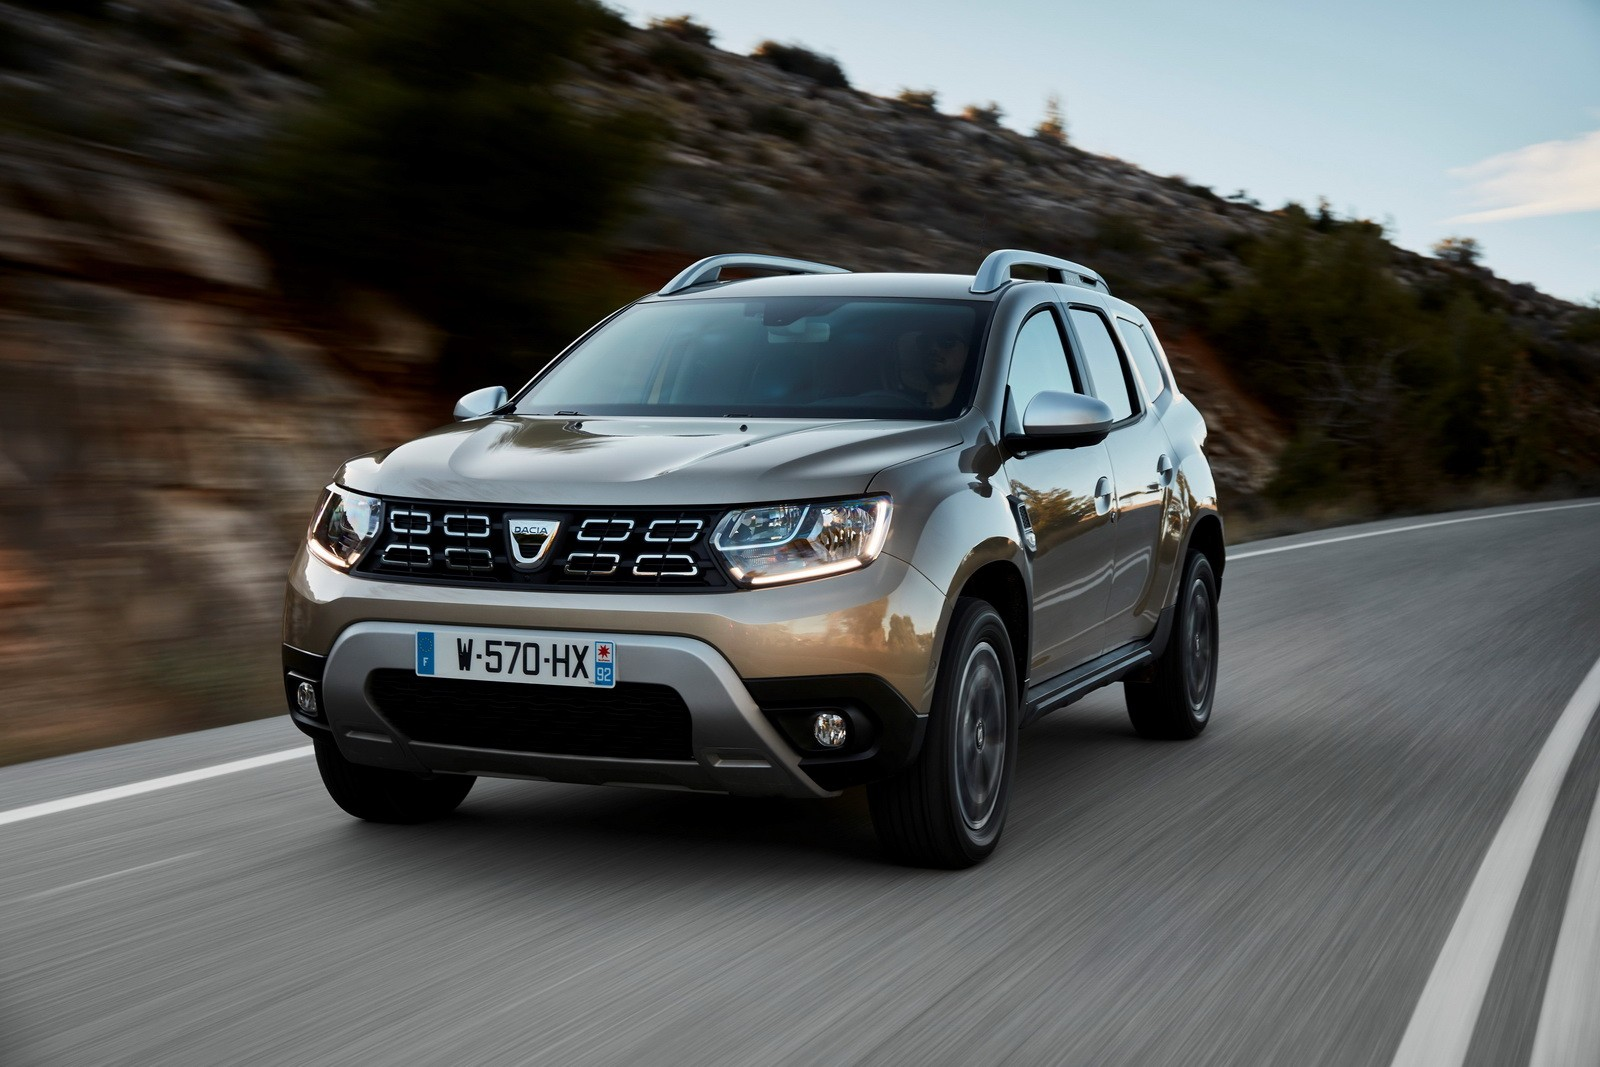 2018 dacia duster detailed in new photos and videos. Black Bedroom Furniture Sets. Home Design Ideas